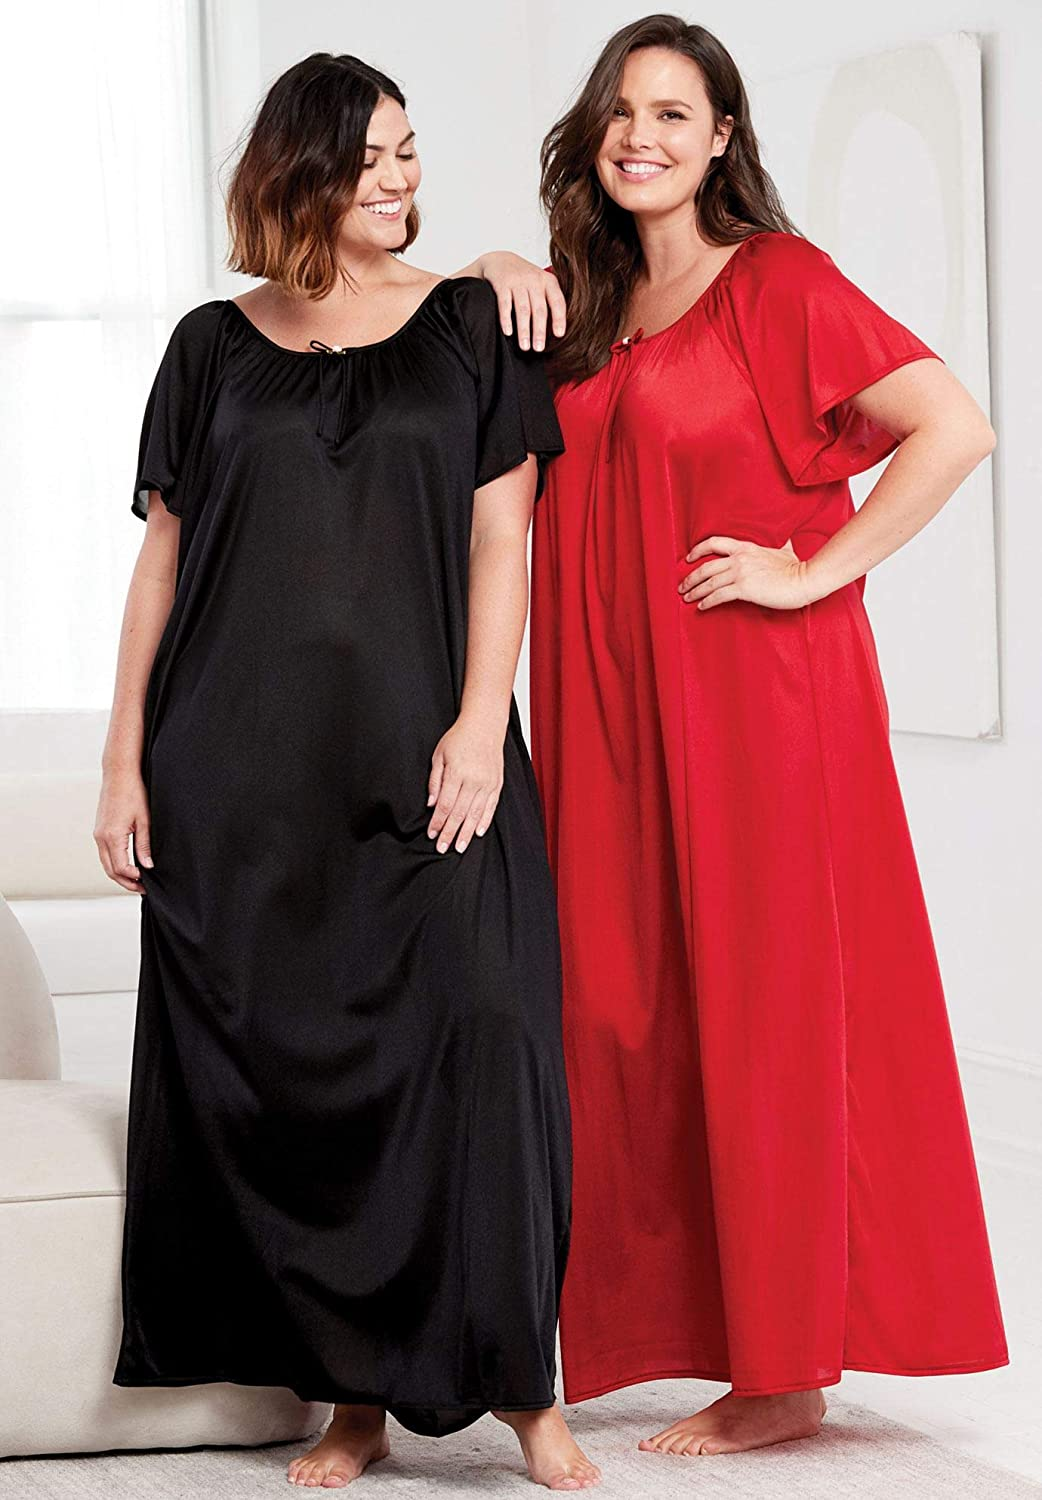 Only Necessities Womens Plus Size 2-Pack Long Nightgown Set